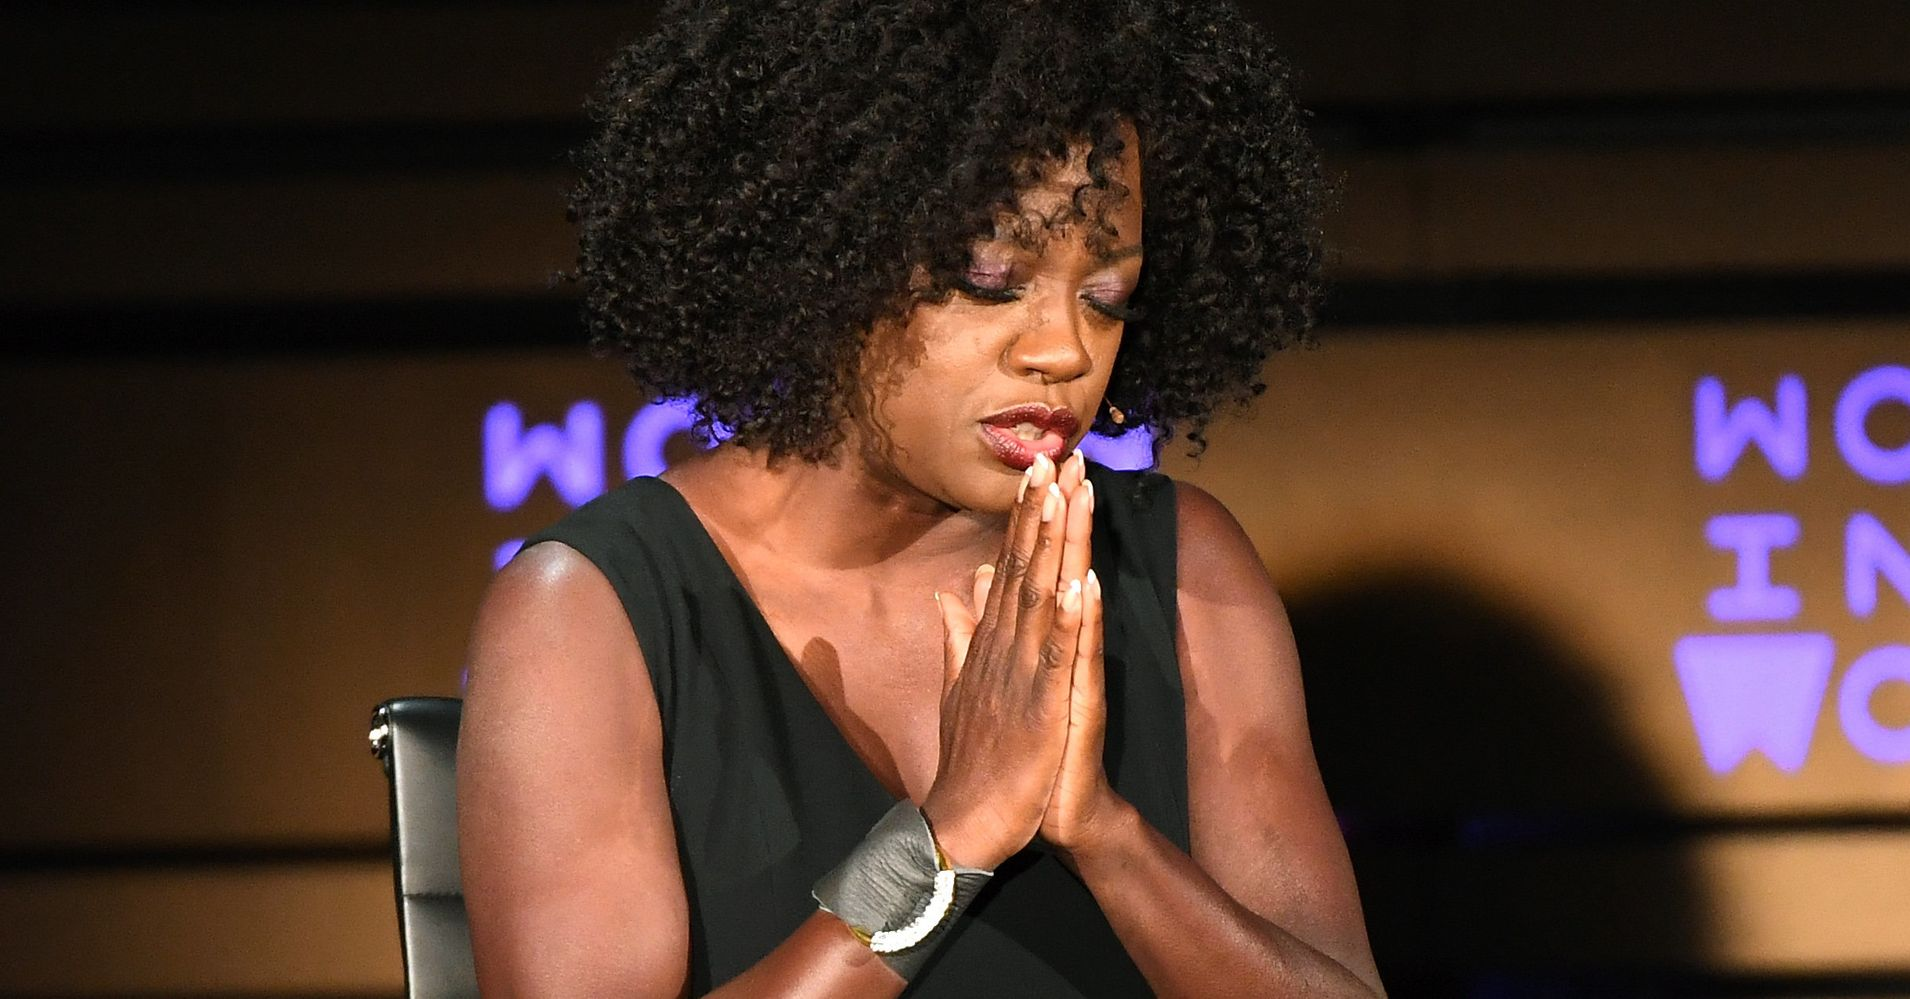 Viola Davis On The Lifelong Impact Sexual Violence Has On Women